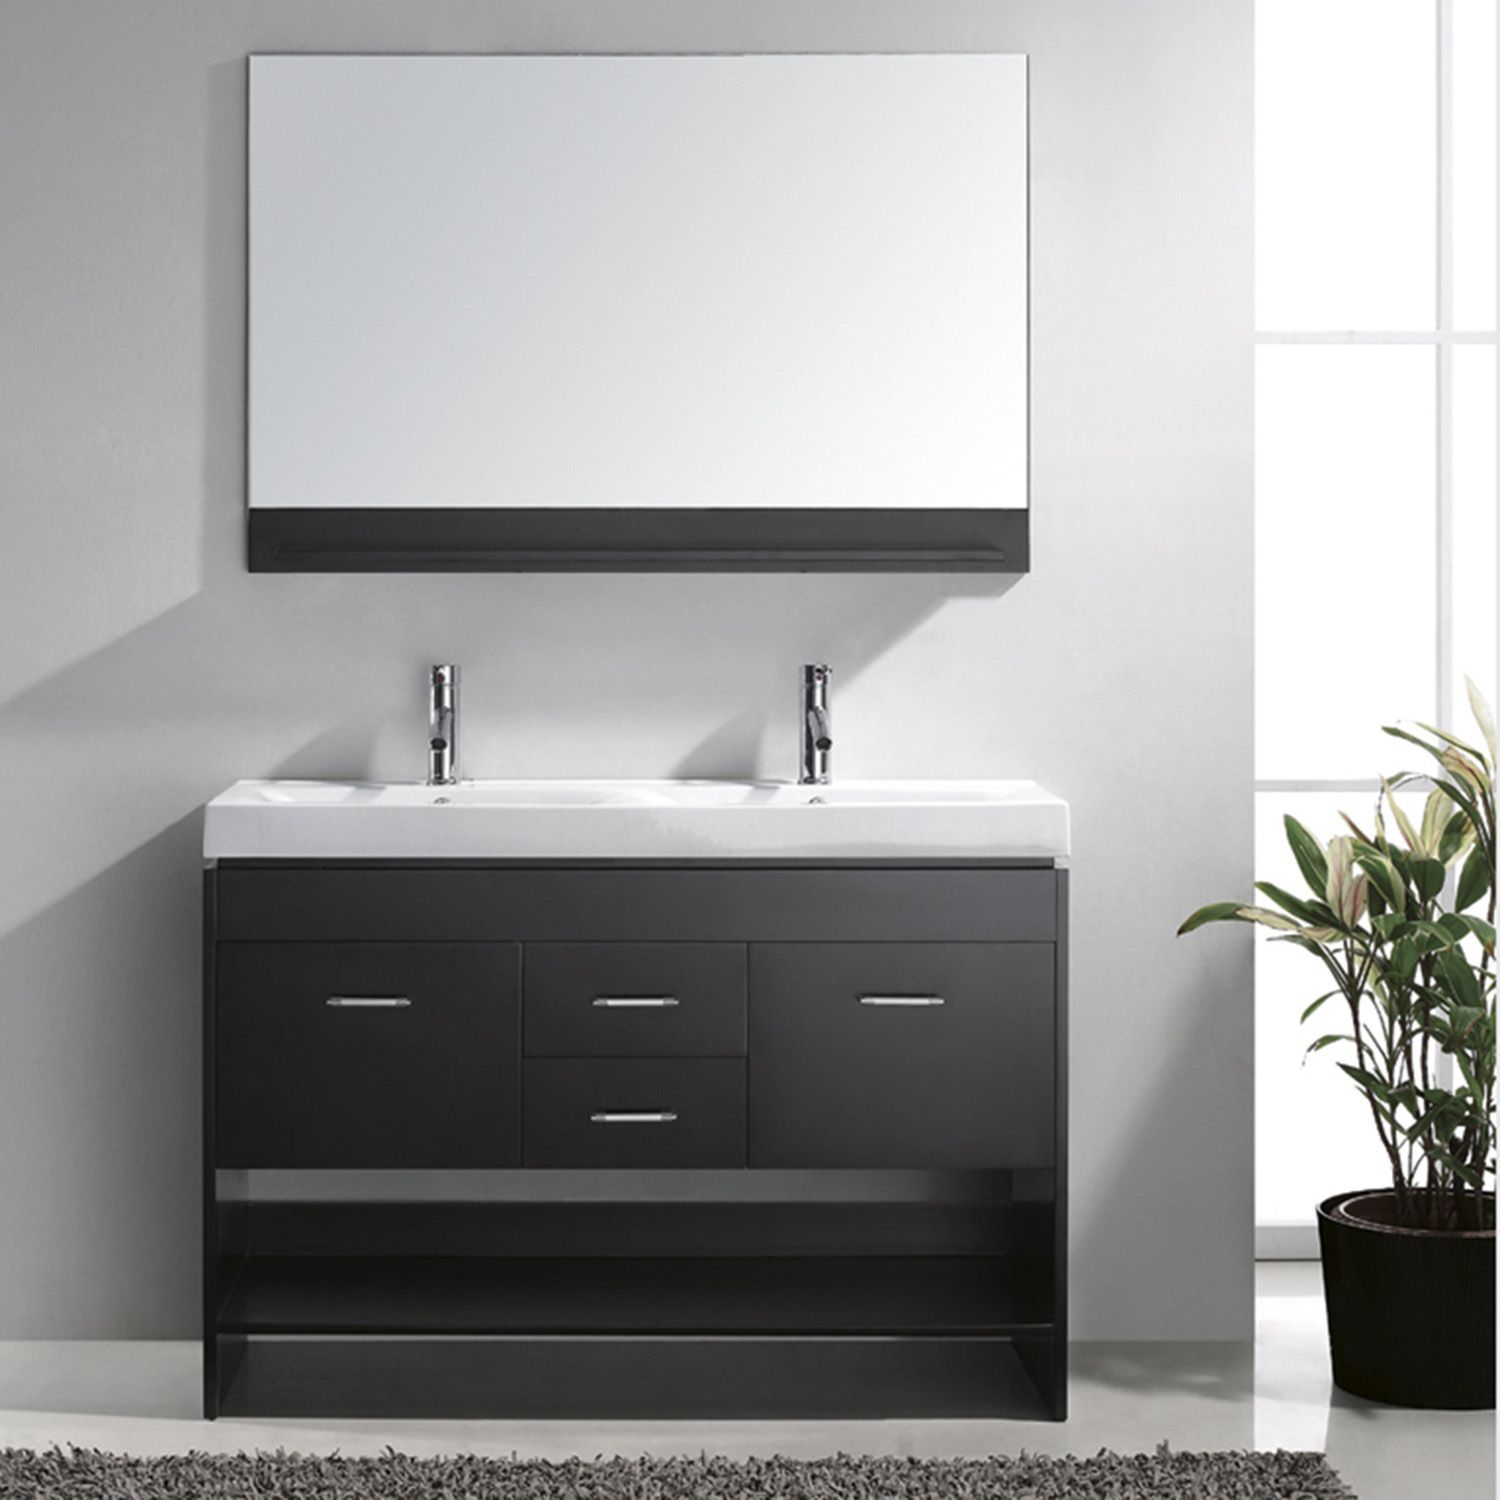 Should You Buy A Cheap Bathroom Vanity Or High Quality One Luxury Living Direct Bathroom Vanity Blog Luxury Living Direct